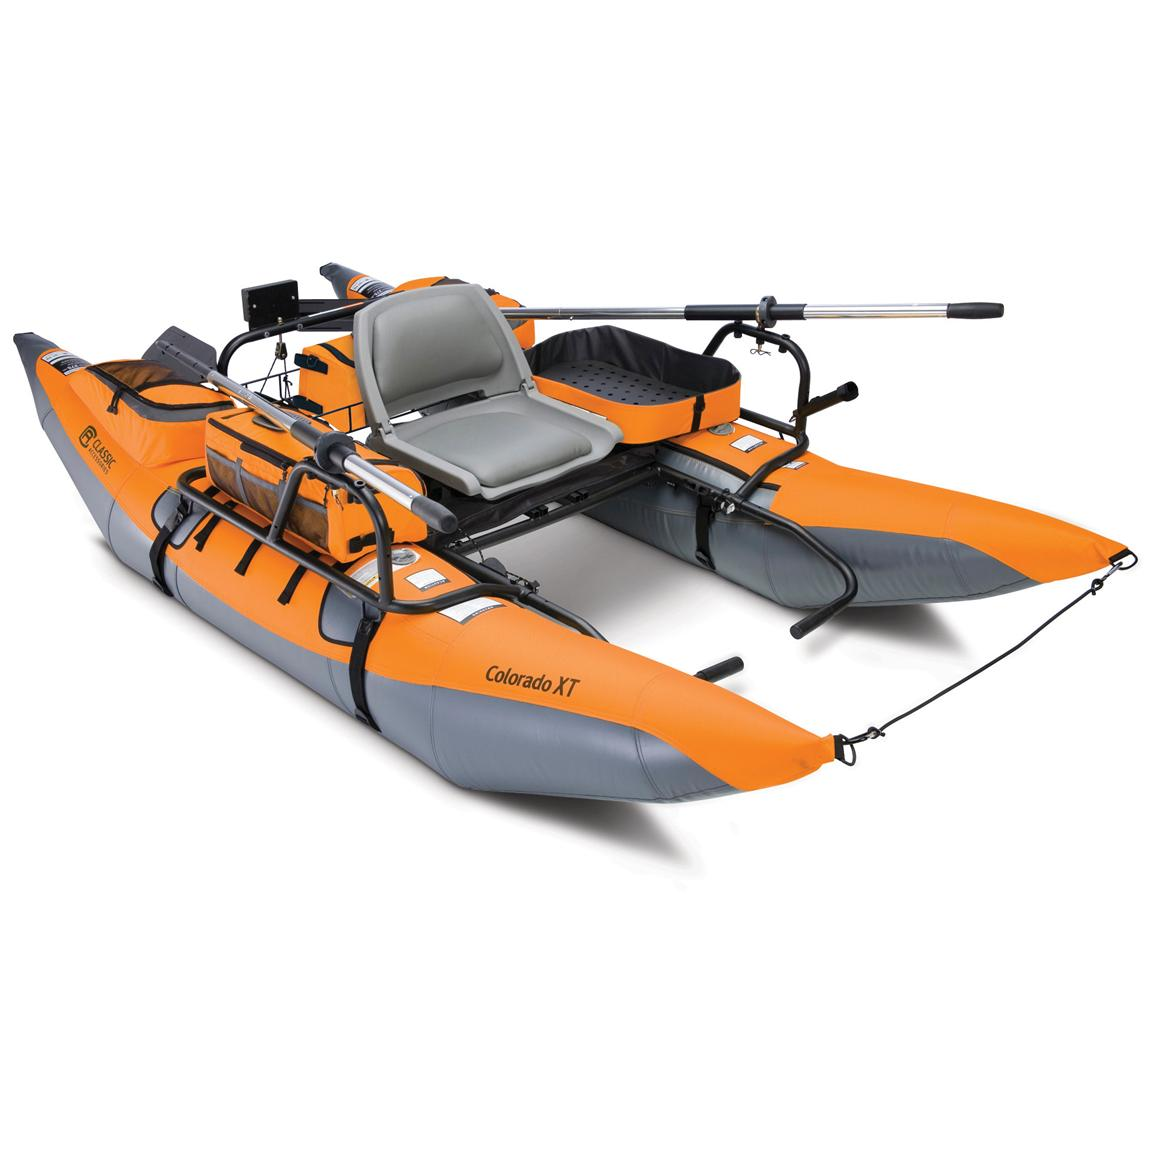 The Colorado XT Pontoon, Pumpkin Seed